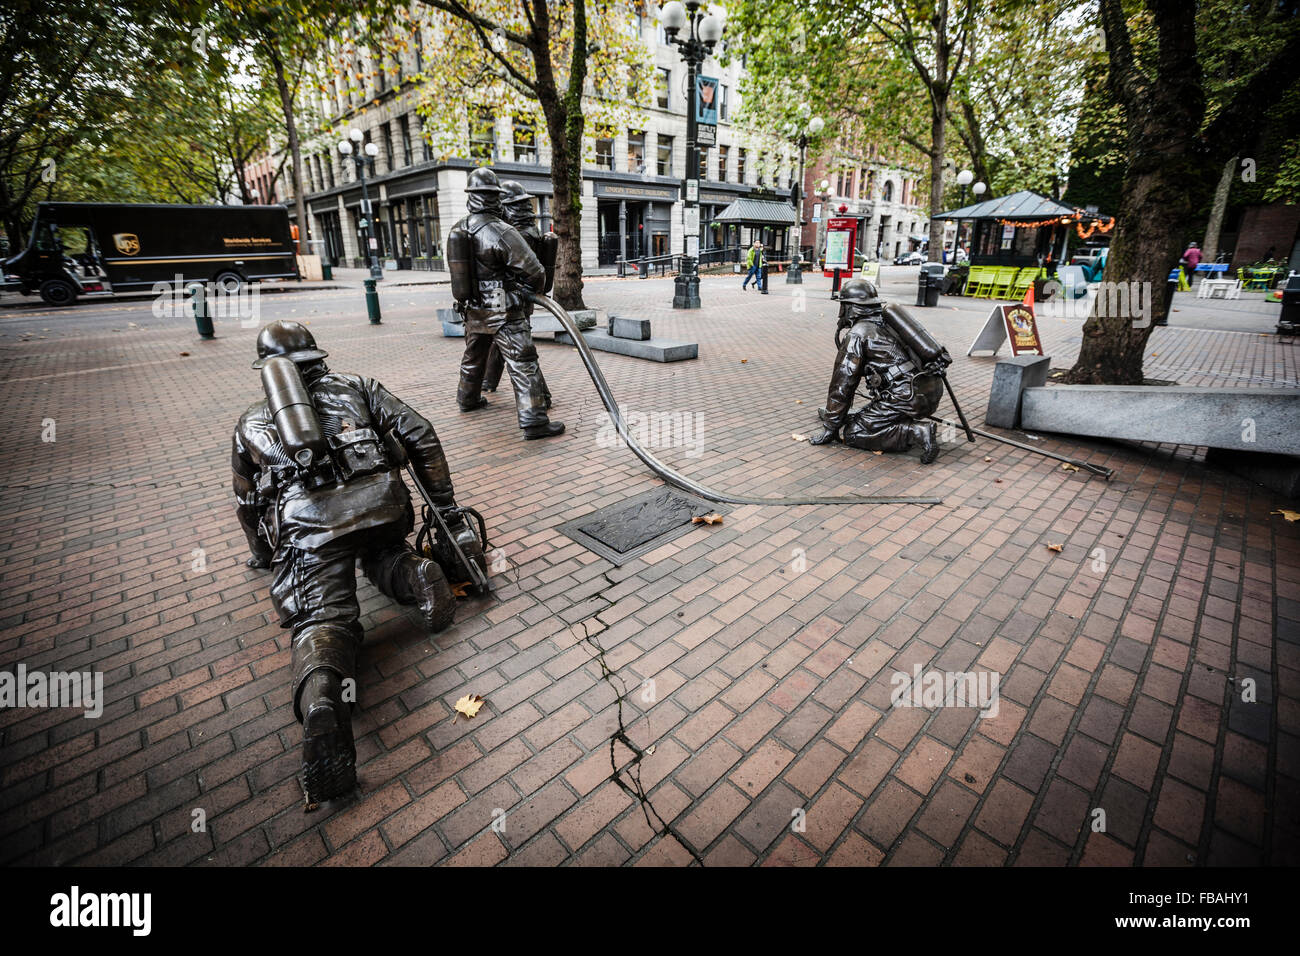 Firefighters Sculpture At Occidental Park Seattle Washington State Stock Photo Alamy